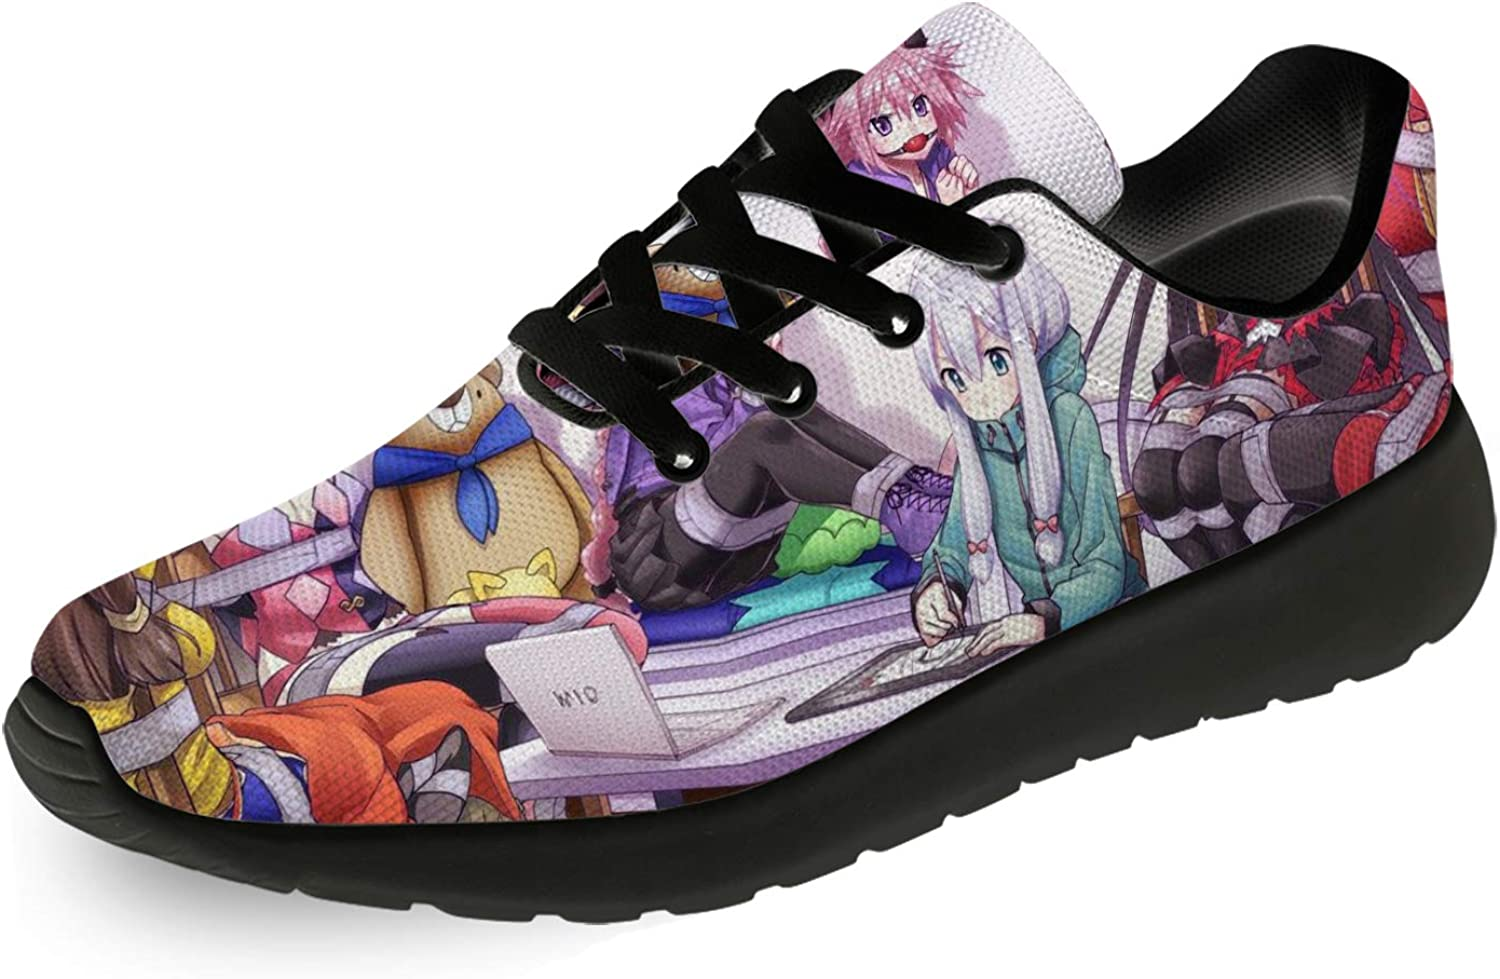 adigow Mens Womens Japanese Anime Casual Print 70% OFF Outlet Lace-up Shoes Fashion 3D